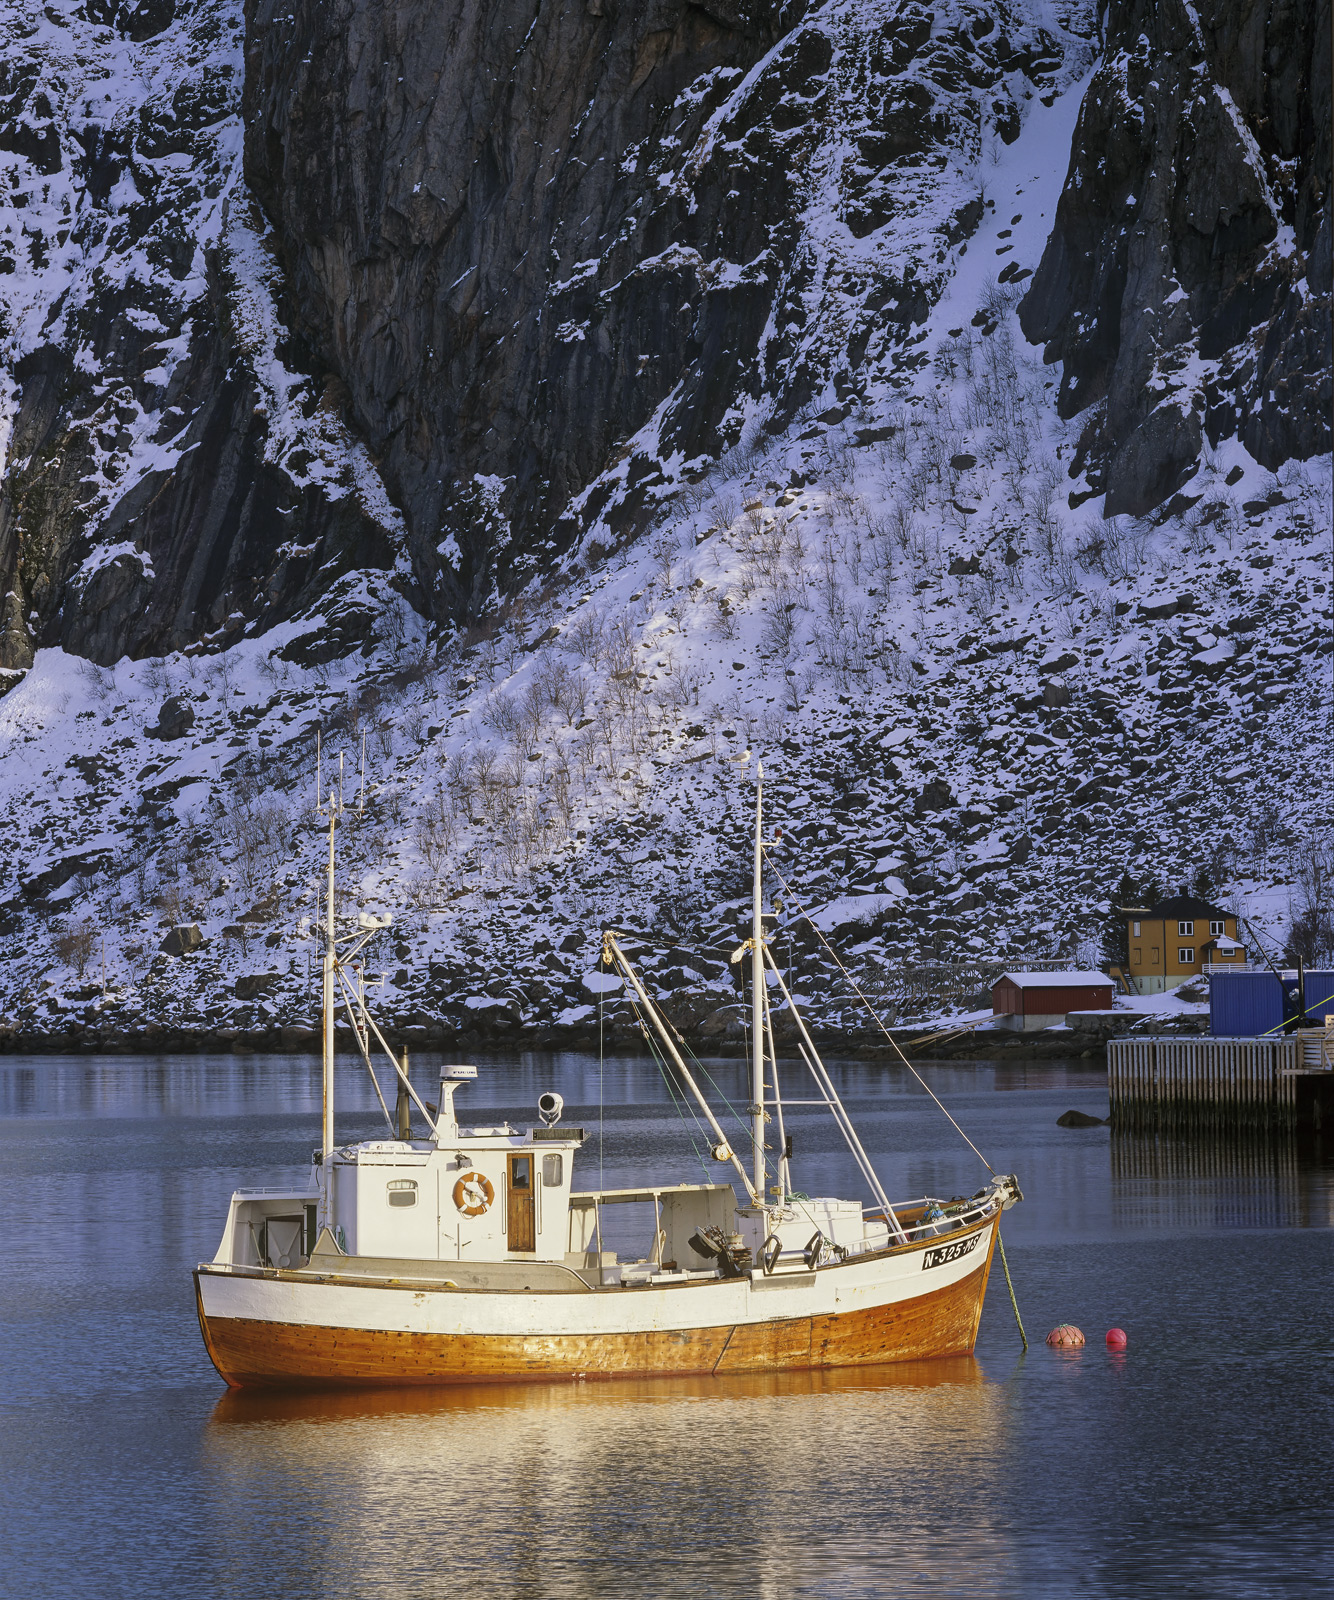 Hamnoy Gold, Hamnoy, Lofoten, Norway, finest, harbour, picturesque, crags, cliff, fishing, boat, golden, sunlight, buoys, photo